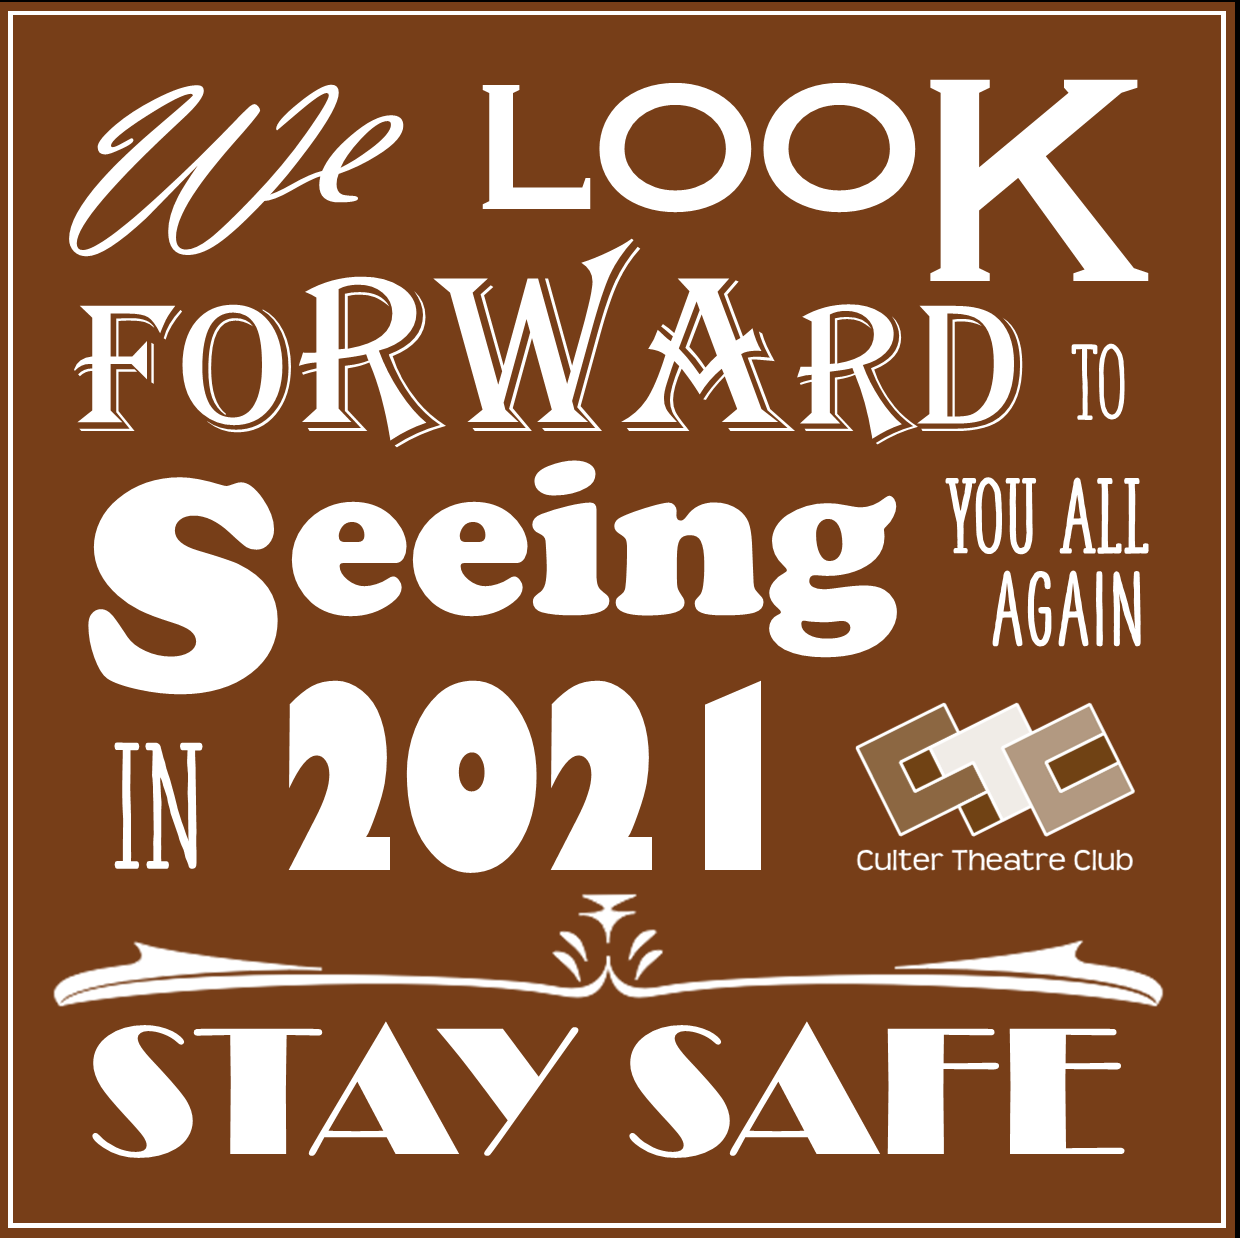 We look forward to seeing you all again in 2021 - Stay Safe